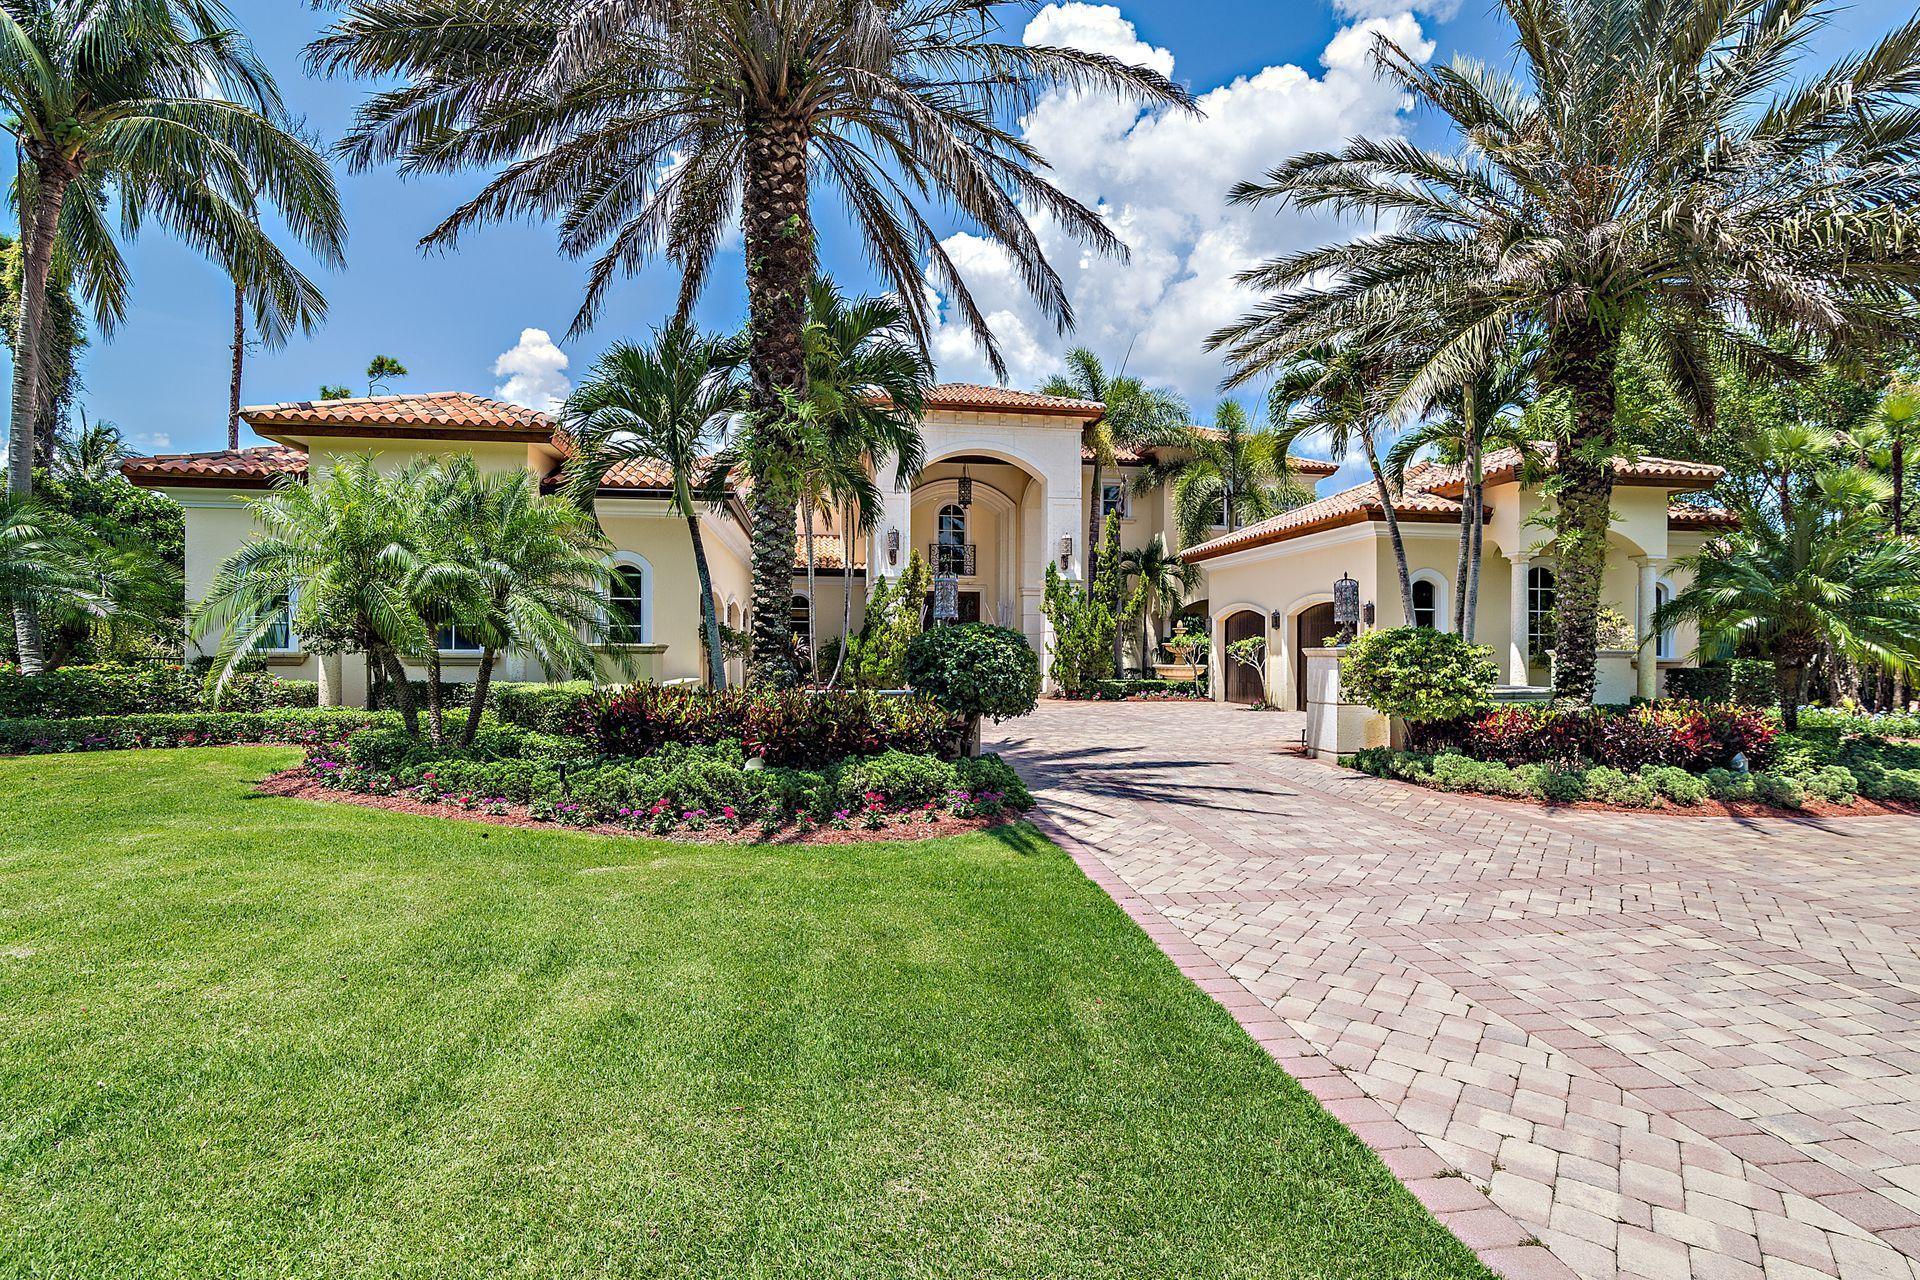 STEEPLECHASE PALM BEACH GARDENS FLORIDA